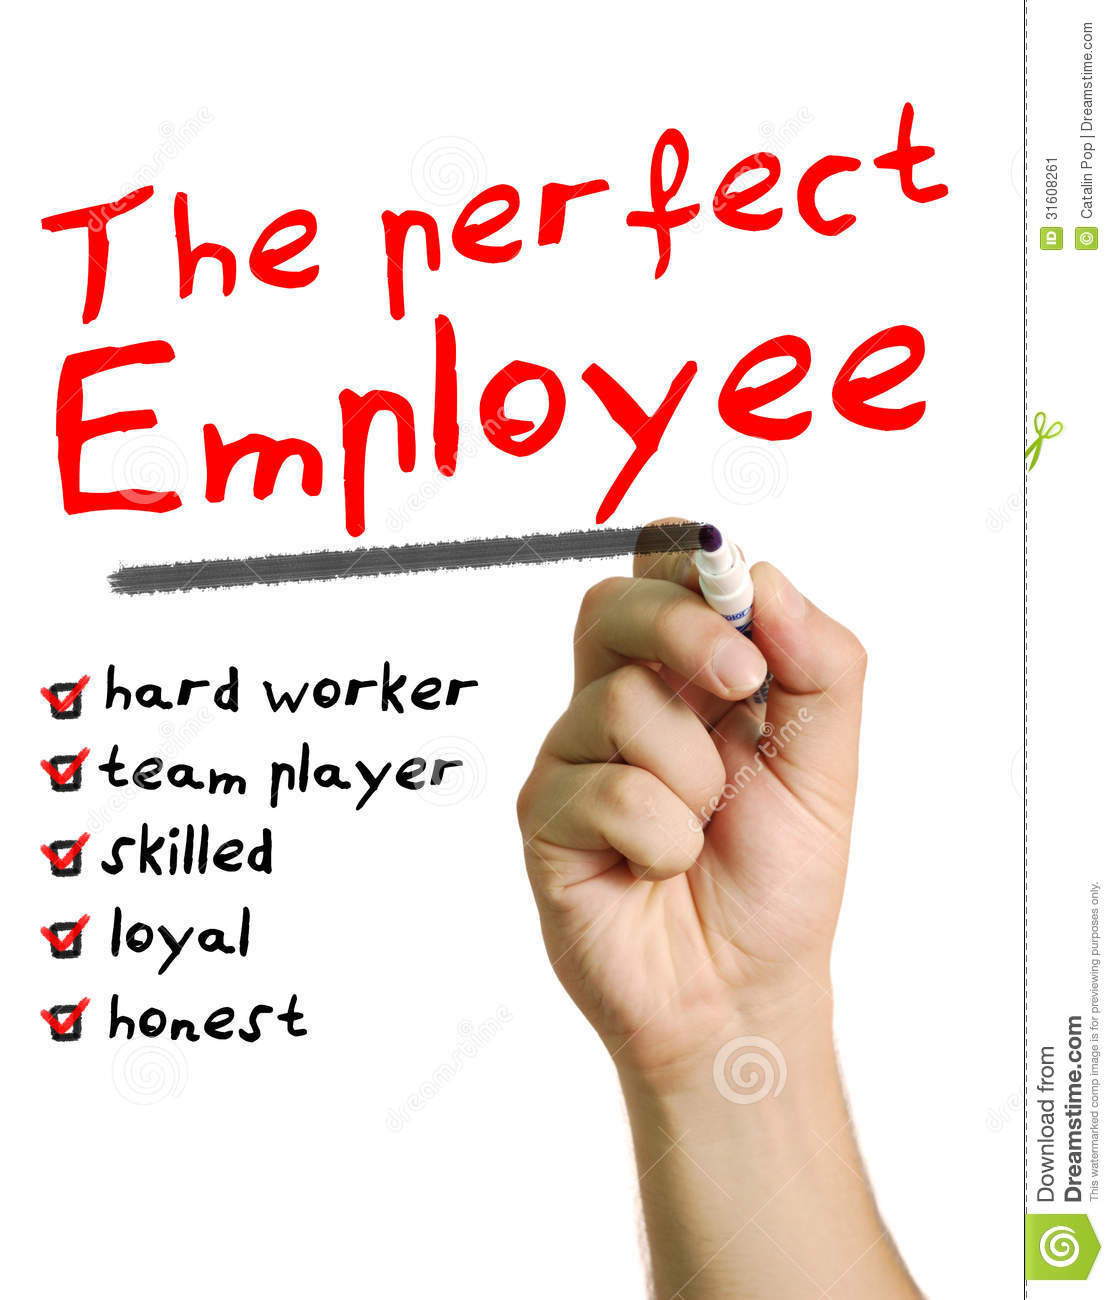 good employee qualities livmoore tk good employee qualities 23 04 2017